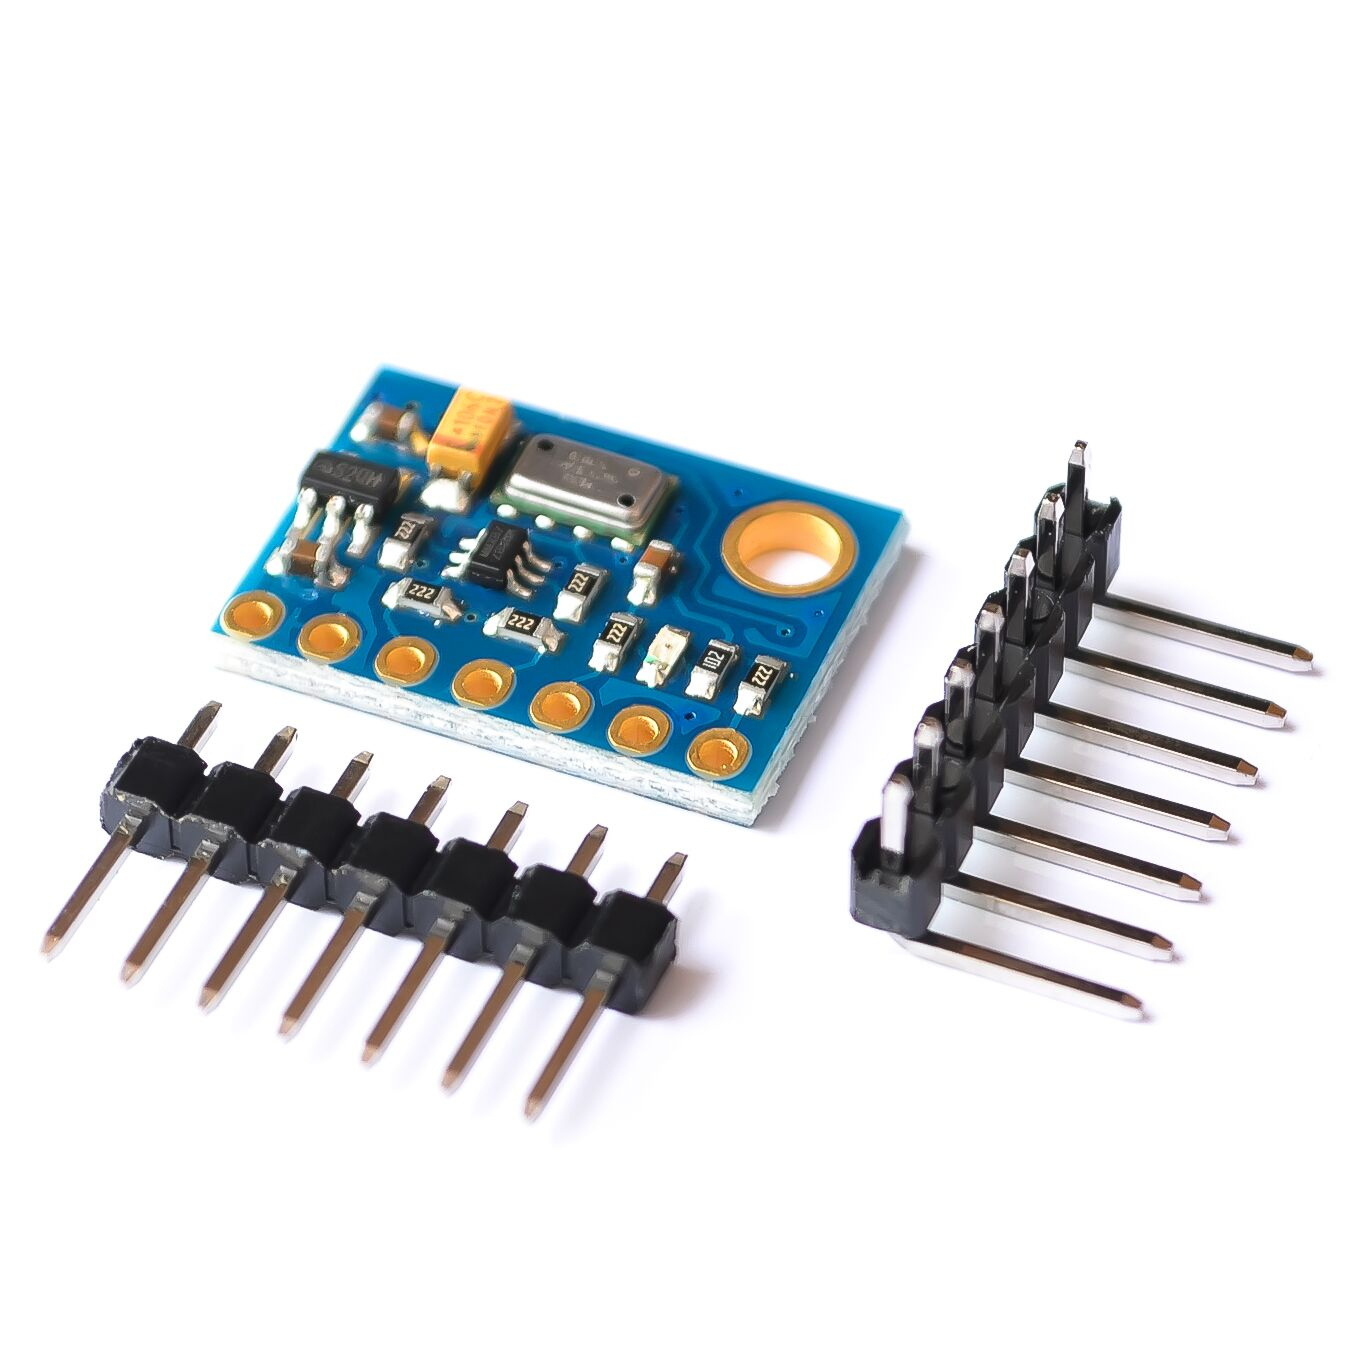 GY-63 MS5611 High-resolution Atmospheric Height Sensor Module IIC / SPI Communication   DropshippingGY-63 MS5611 High-resolution Atmospheric Height Sensor Module IIC / SPI Communication   Dropshipping